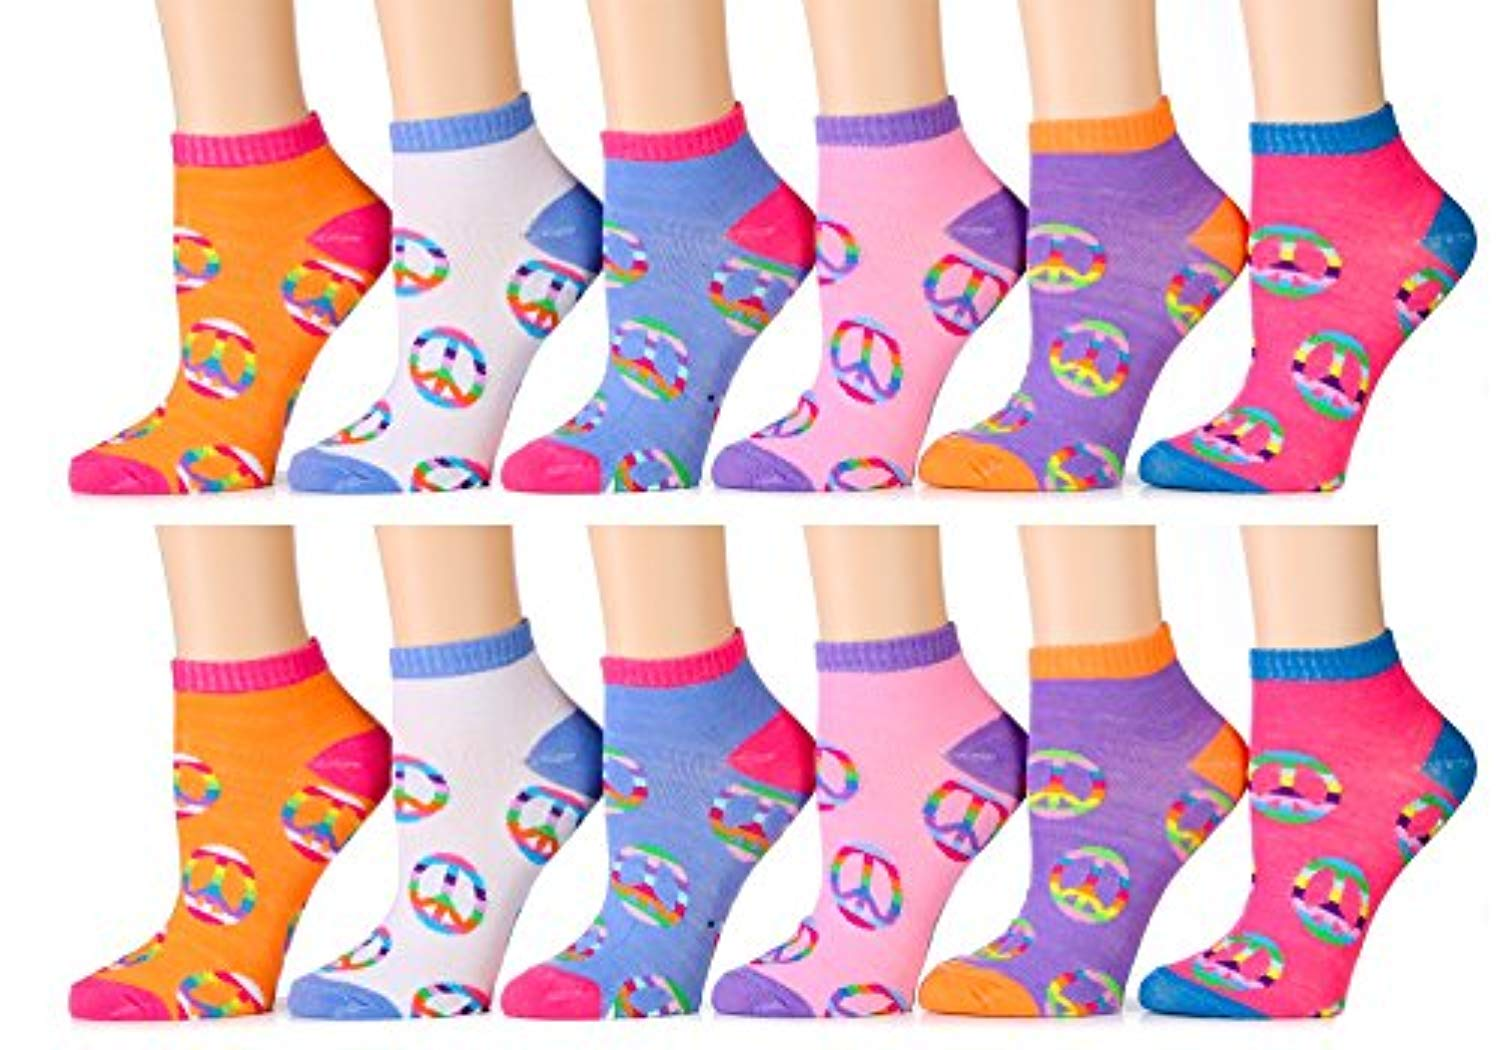 12 Pairs Women Fashion Cotton School Casual Ankle Low Cut Socks Size 9-11 BFLY